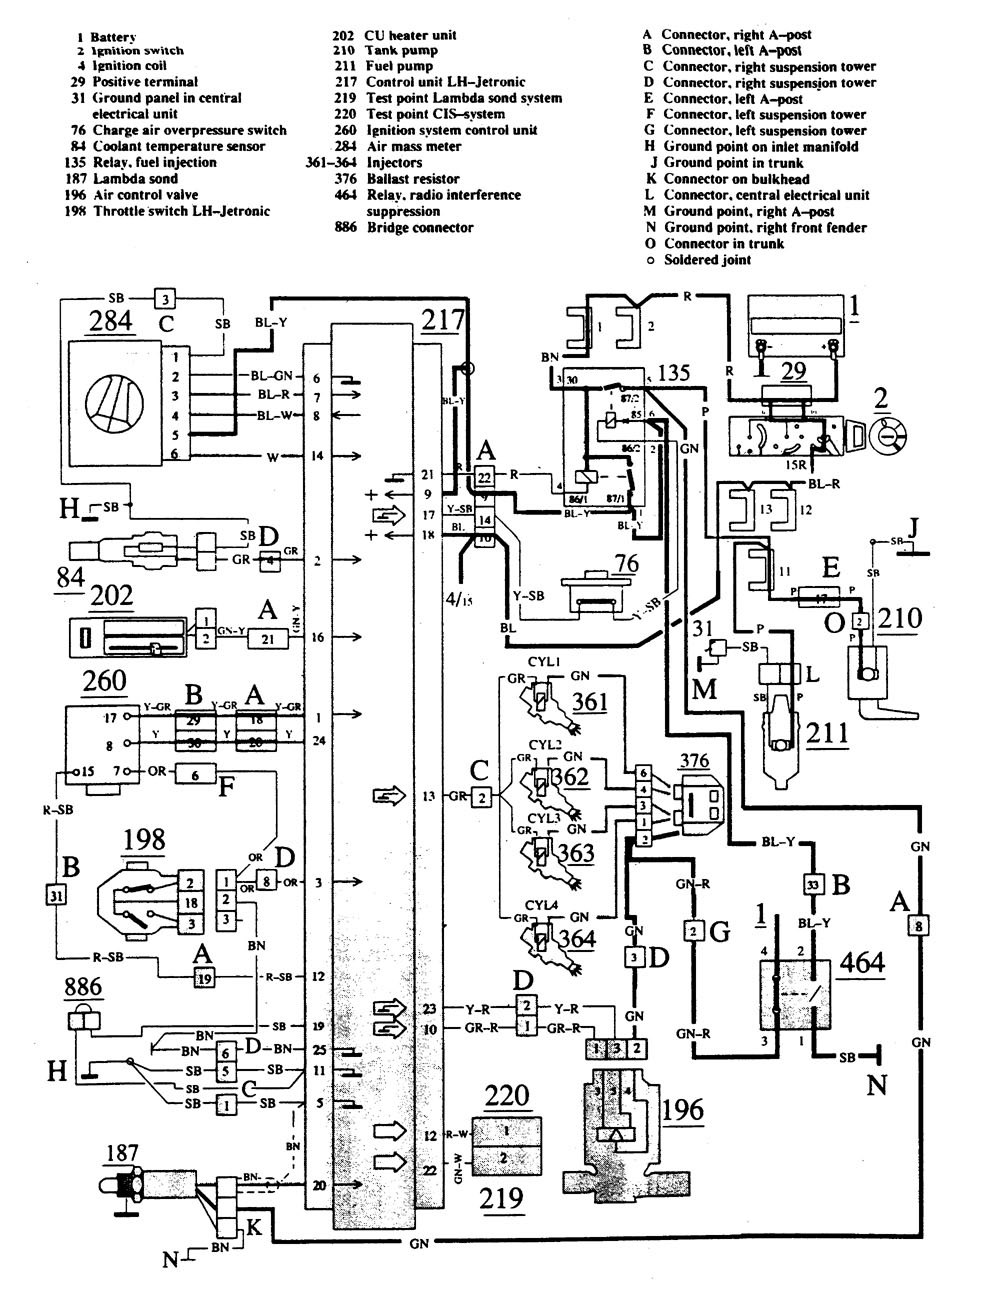 volvo 740 fuel pump relay wiring diagram